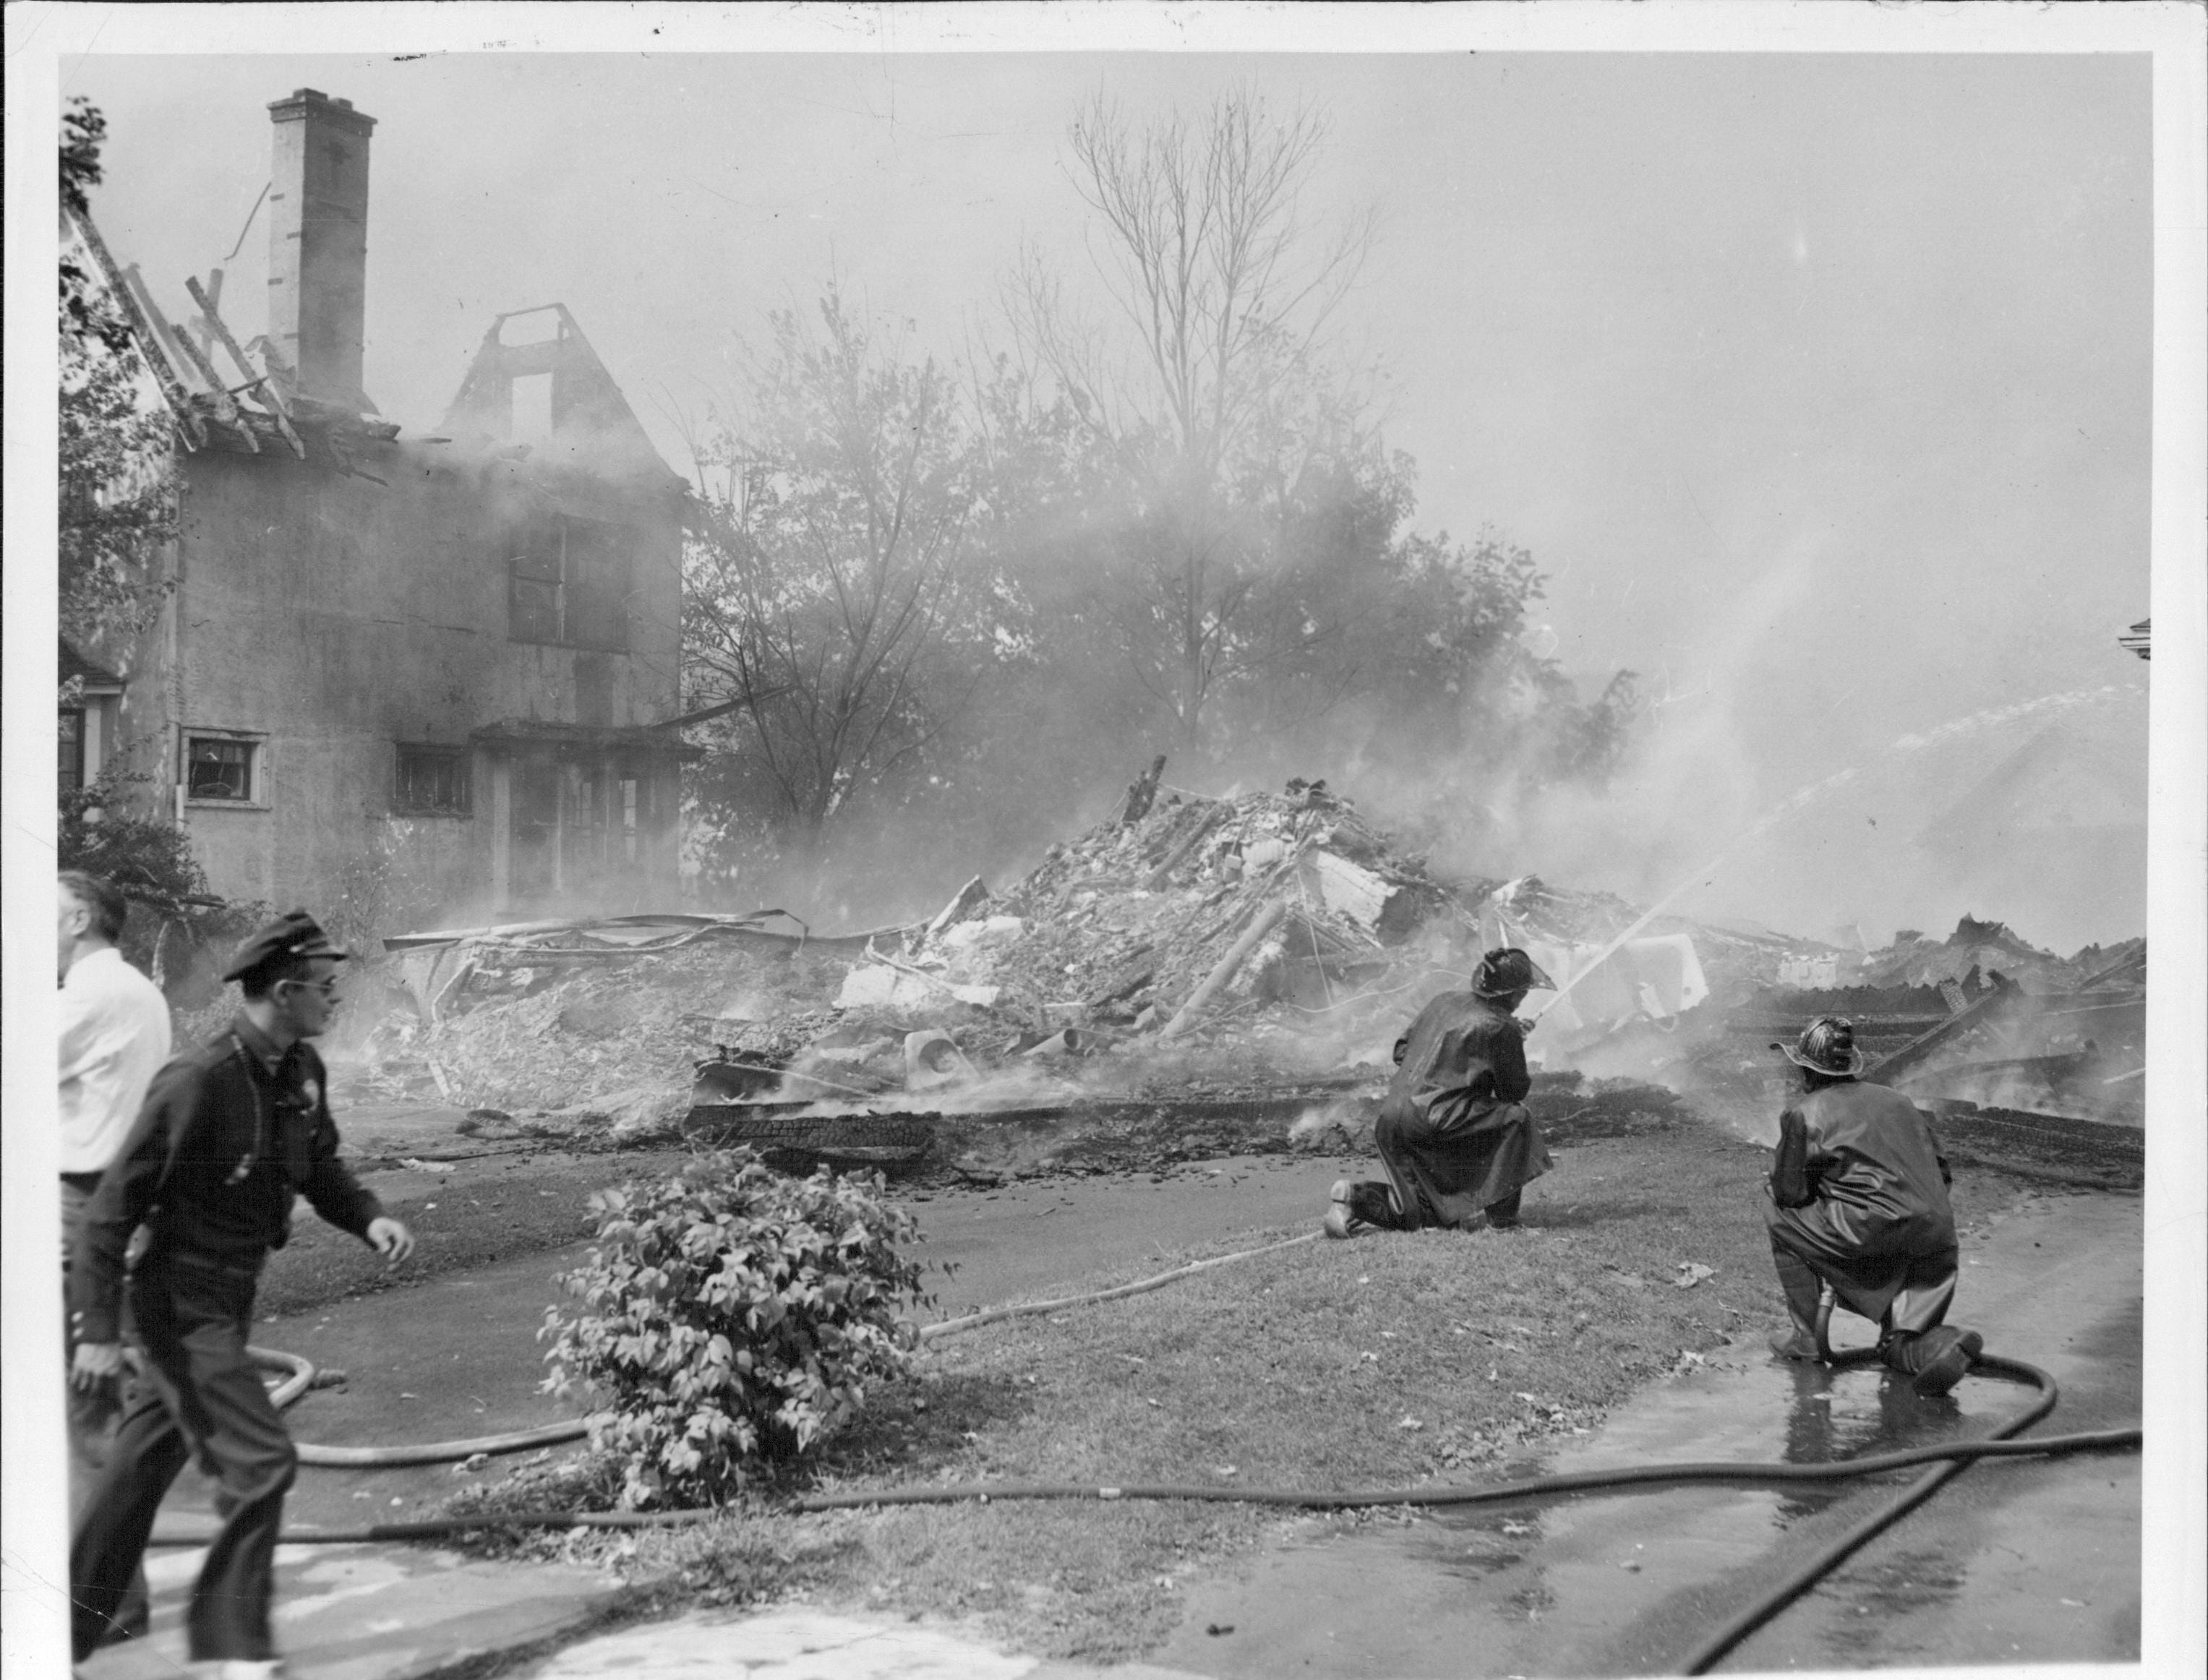 Firefighters spray water on remains of destroyed home.  (Staff photo, 9/21/1951)